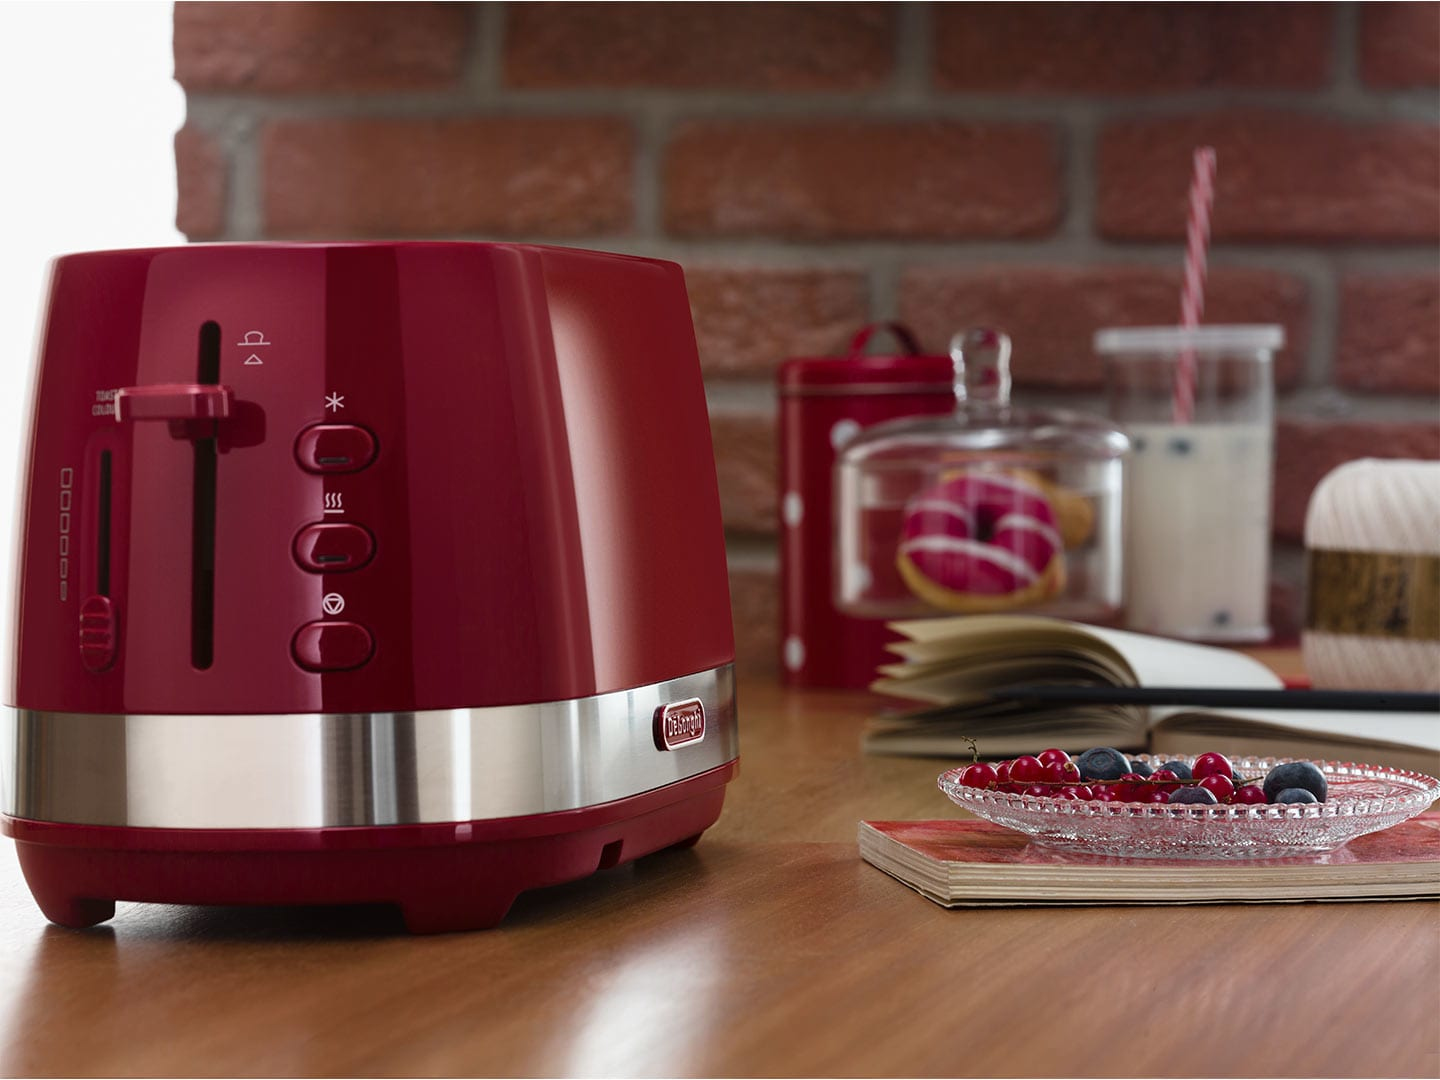 8004399762176 DeLonghi Active Line CTLA2103.R toaster 2 slice(s) Red 900 W DeLon